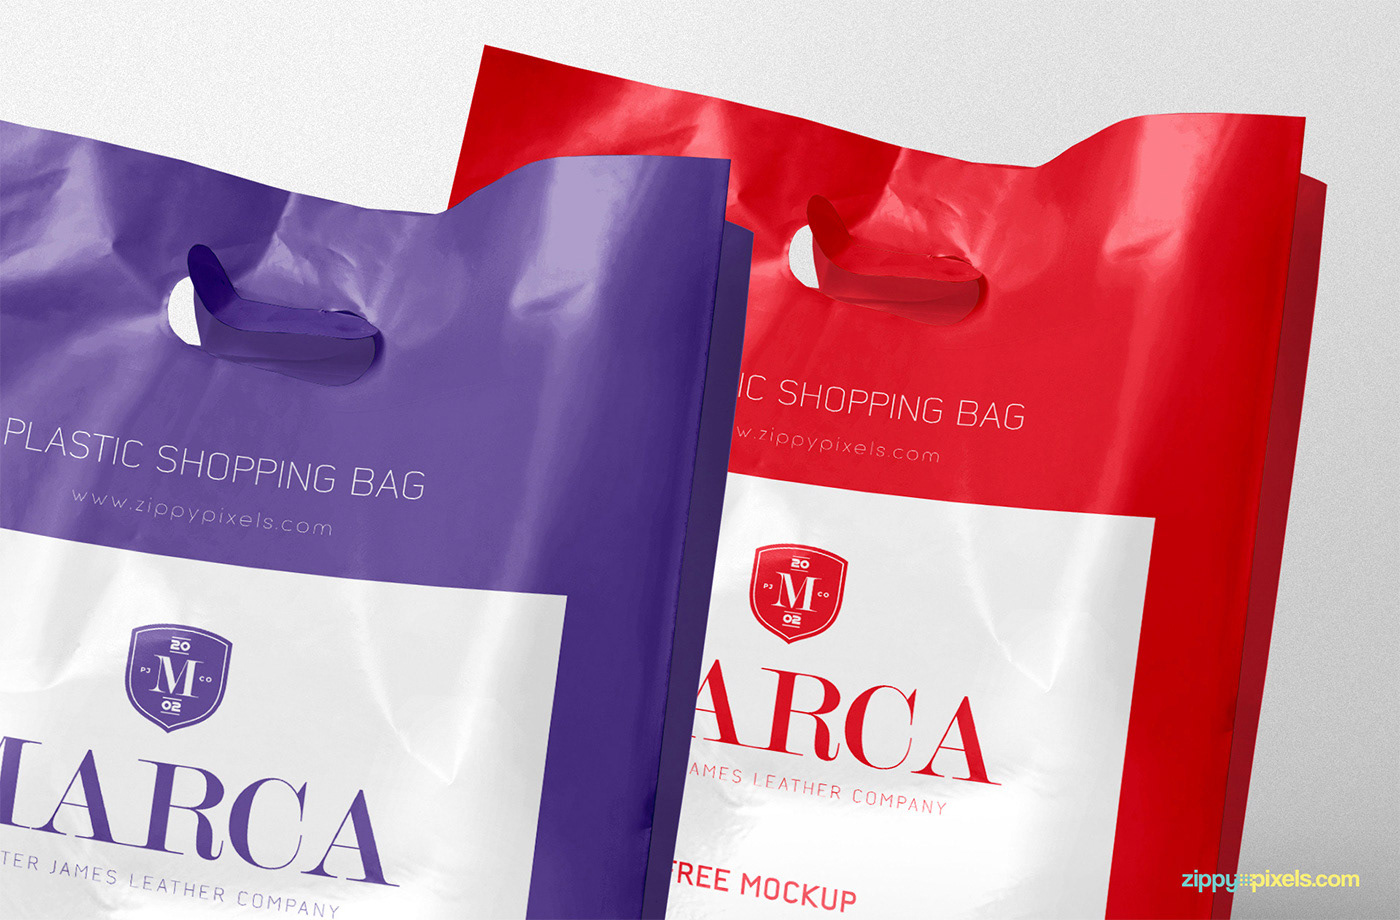 Kind of psd files in 2500×2500 px resolution with transparent background. Free Plastic Bag Mockup On Behance